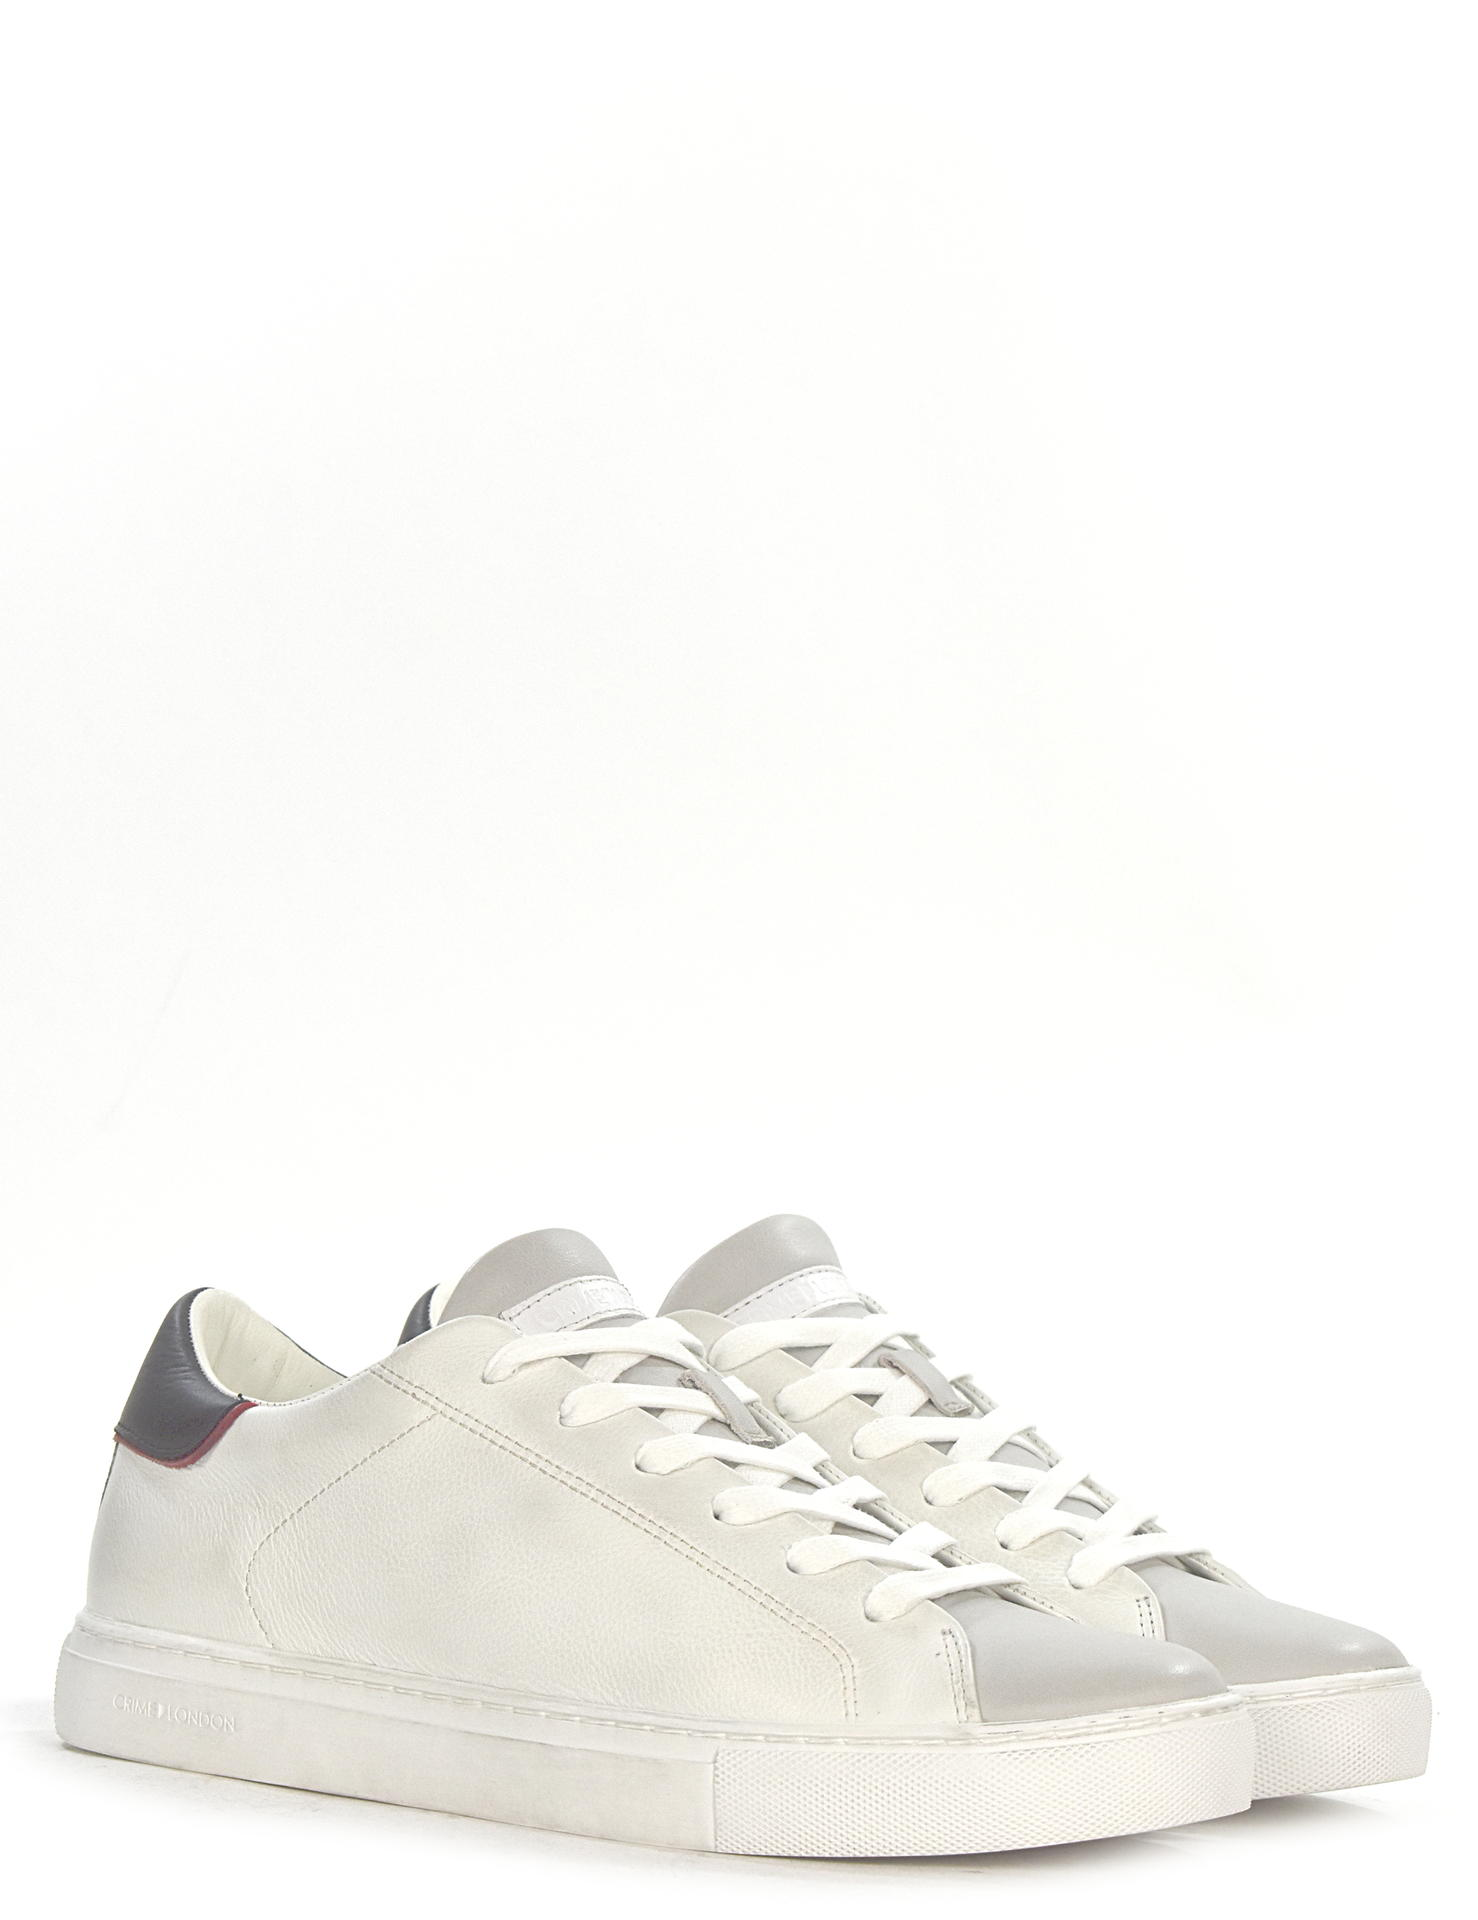 SNEAKERS CRIME LONDON 11542 BIANCO